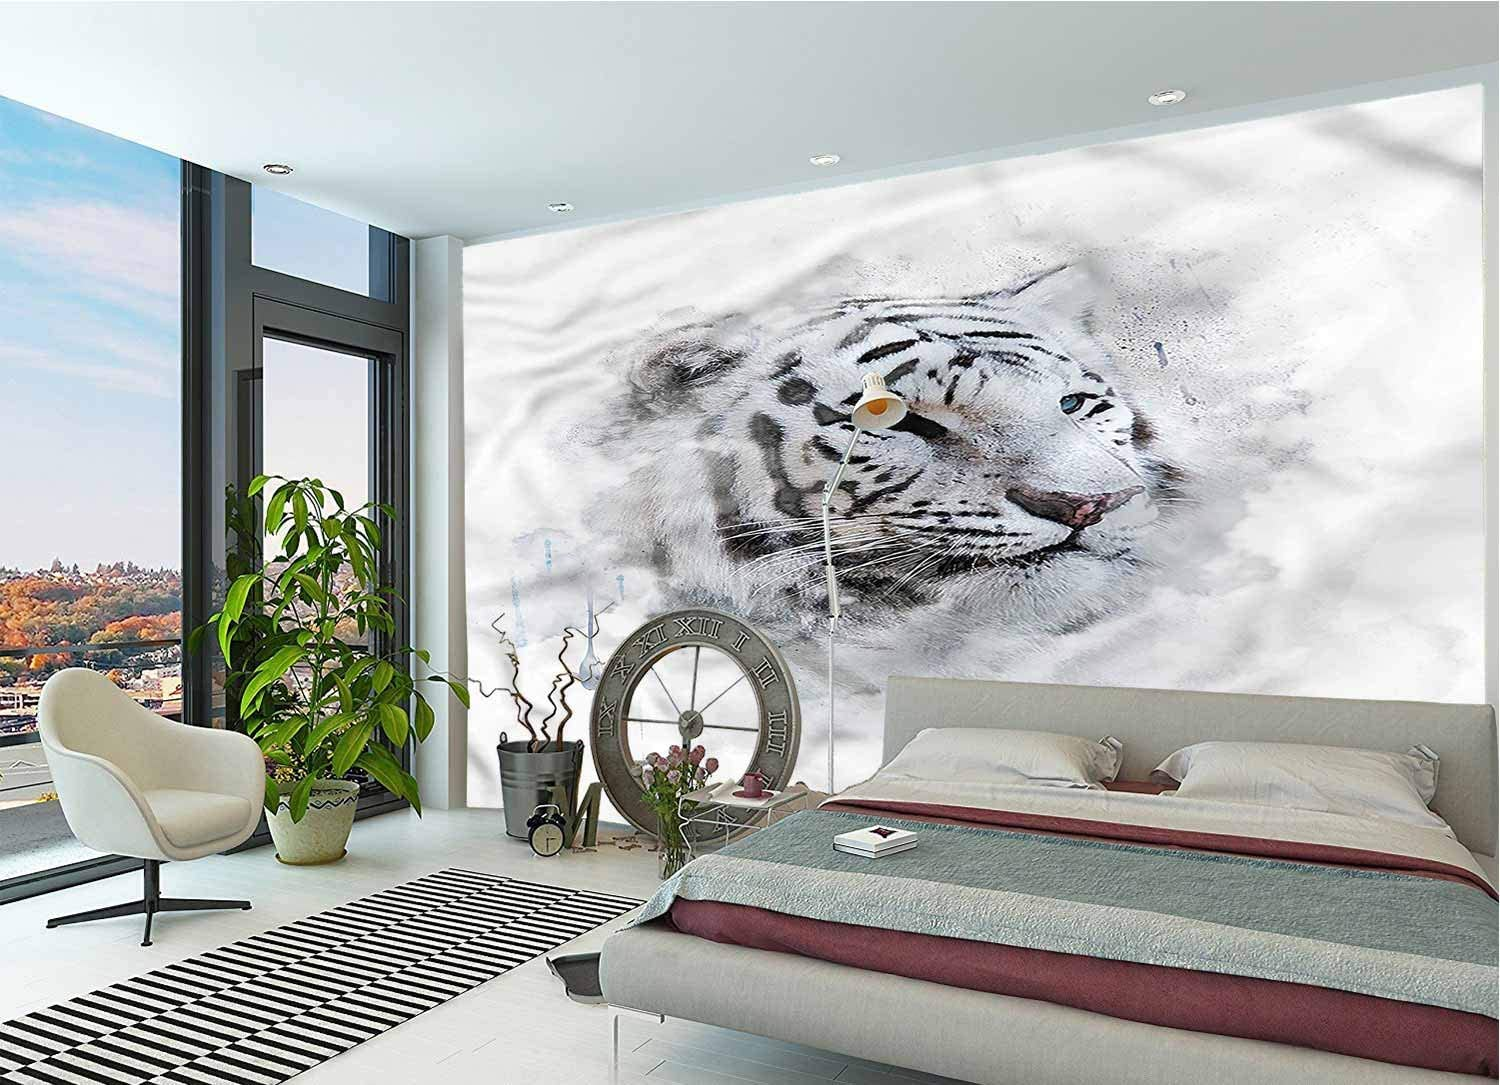 LCGGDB Animal Large Wall Mural,White Tiger Portrait Removable Large Sticker Foil Wall Decor for Office Kids Bedroom Nursery Family Decor-144x100 Inch